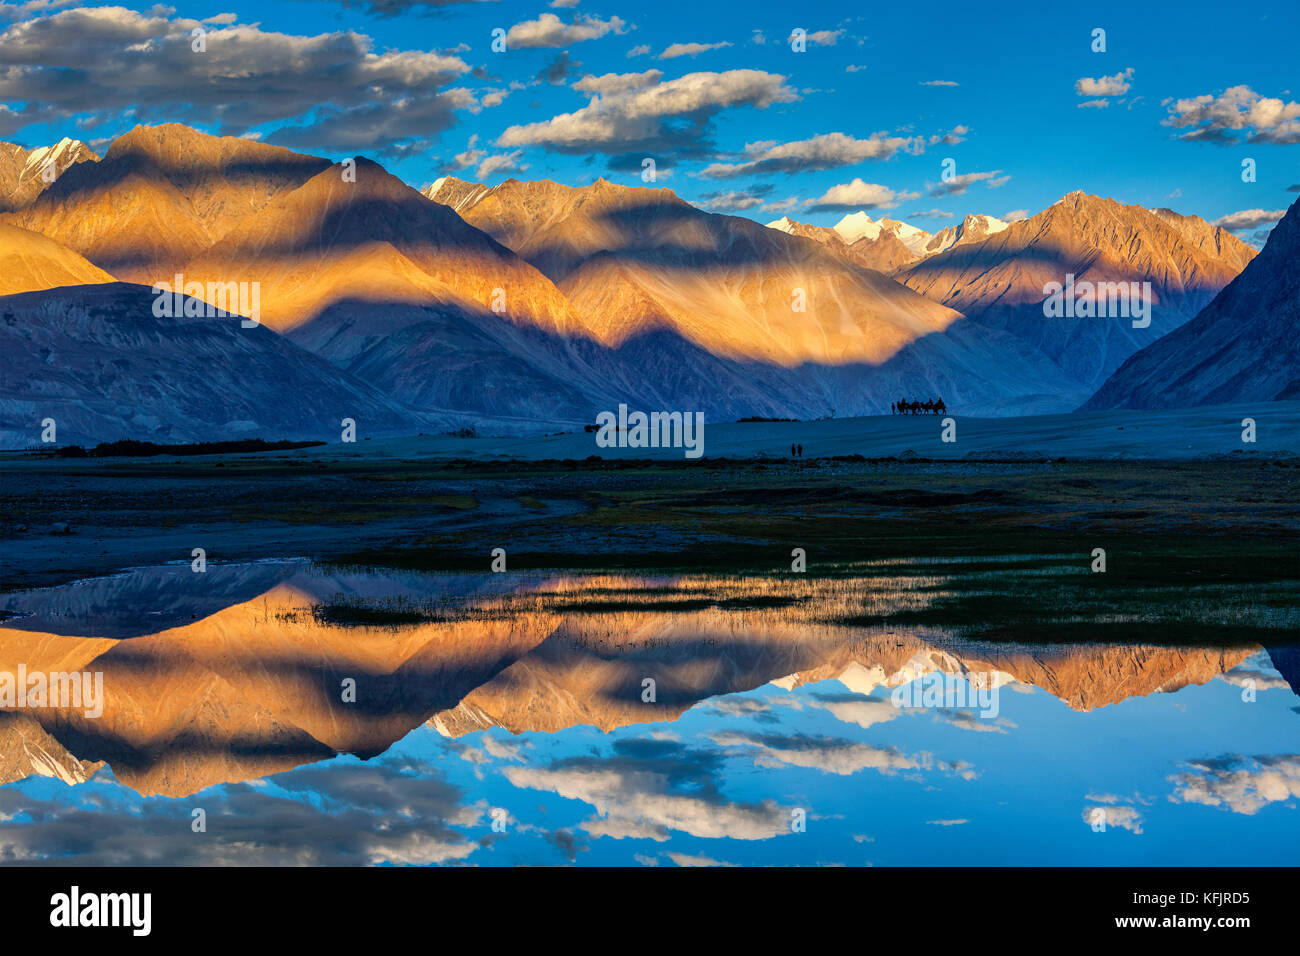 Himalayas on sunset, Nubra valley, Ladakh, India - Stock Image